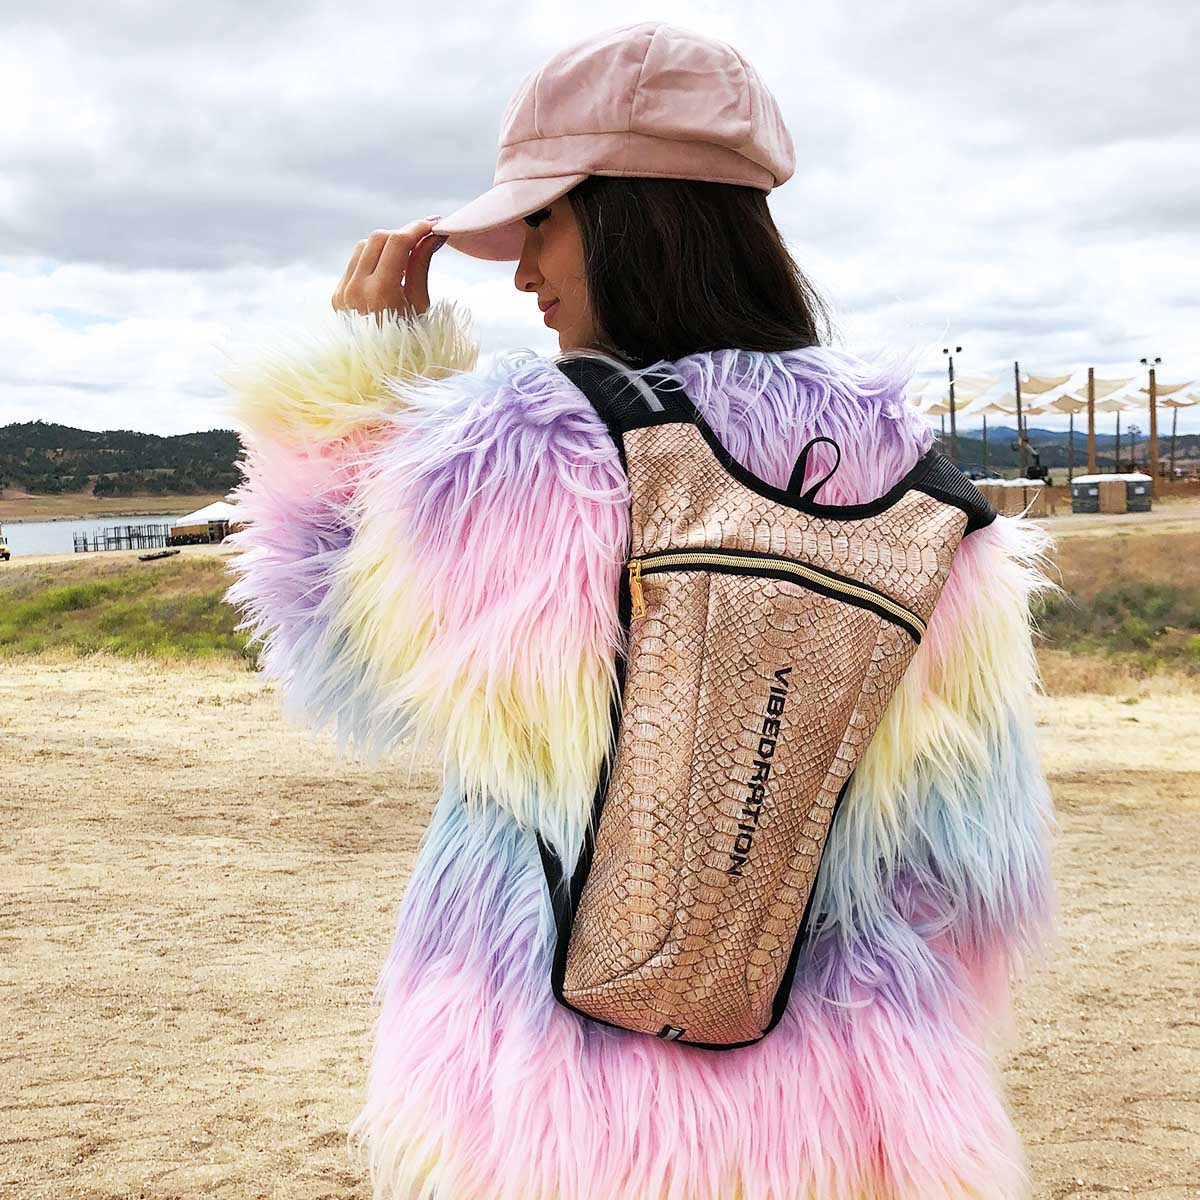 Rose Gold water backpack for festivals